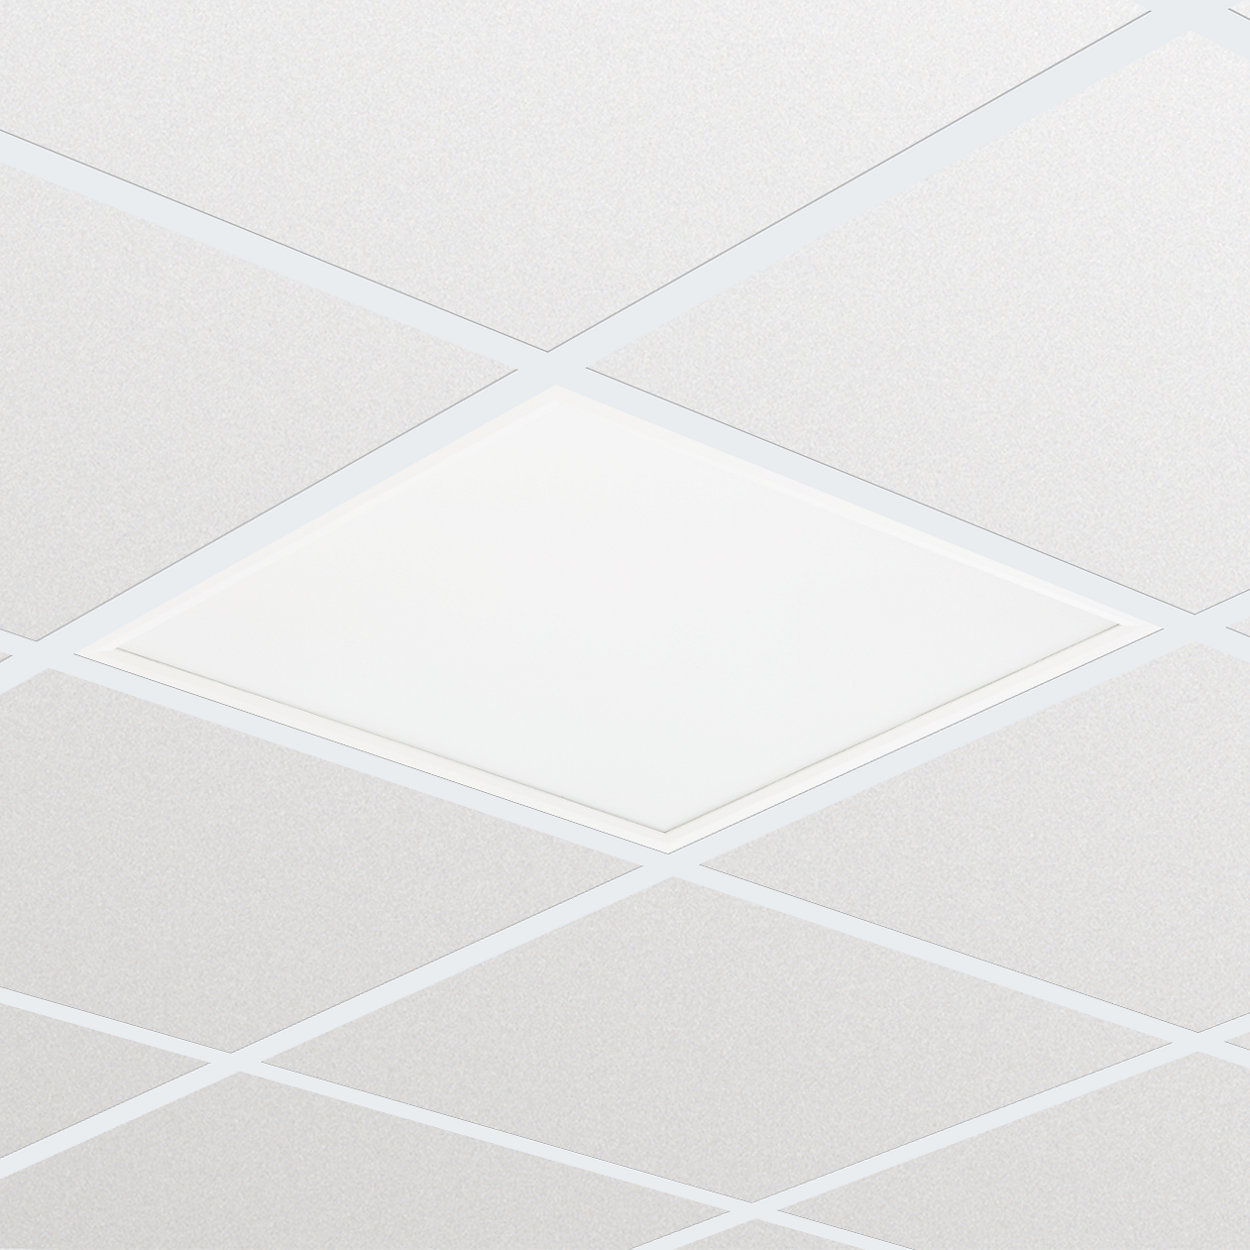 CoreLine Panel – a escolha mais clara de LED